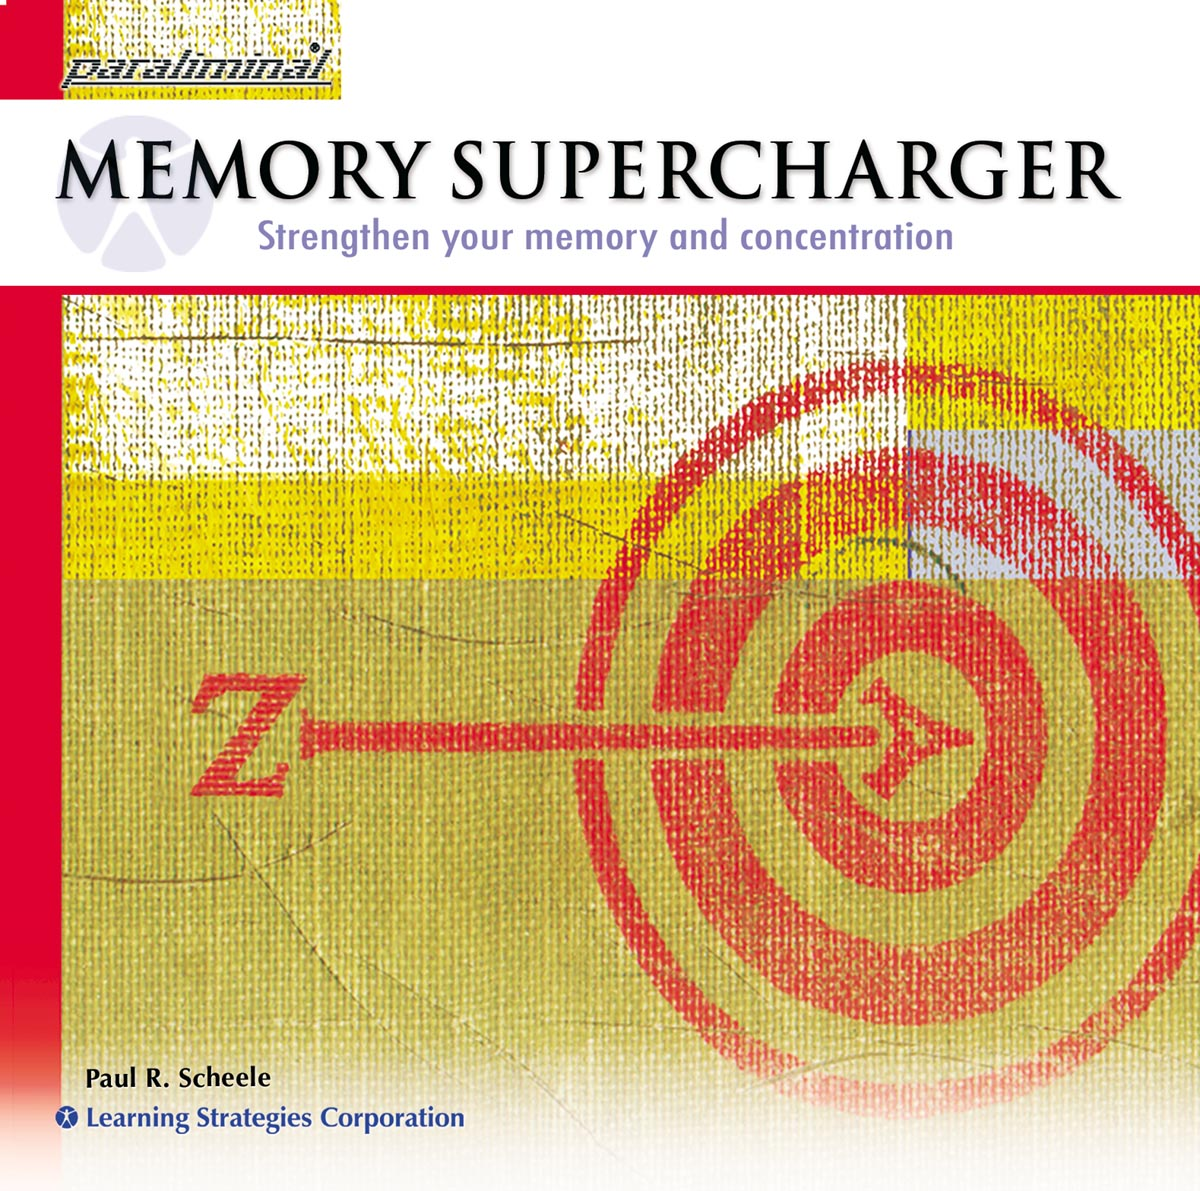 Memory Supercharger Paraliminal CD